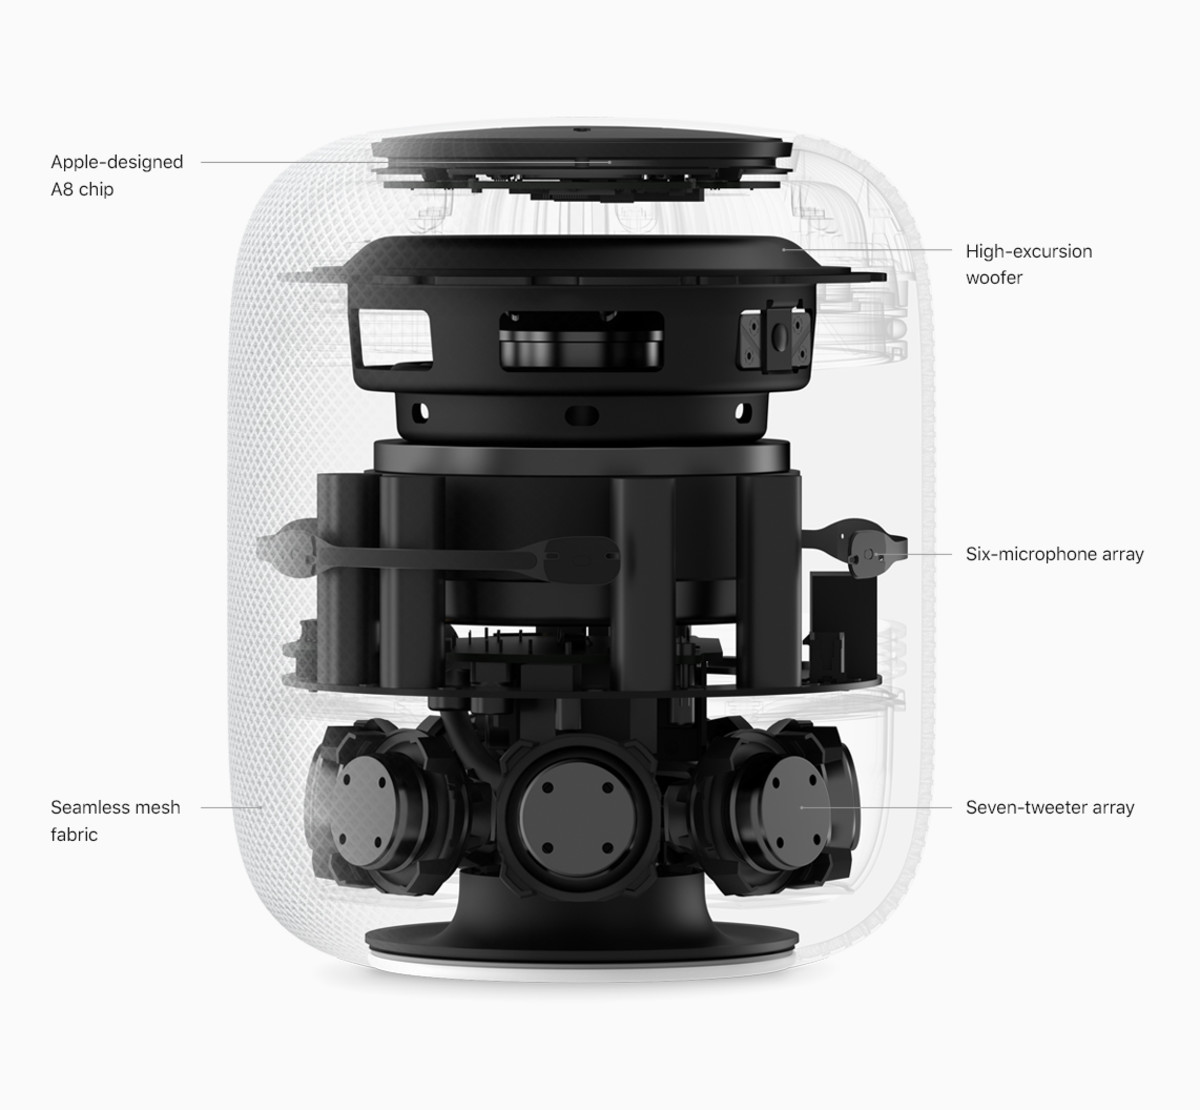 homepod-help-support-questions-answered